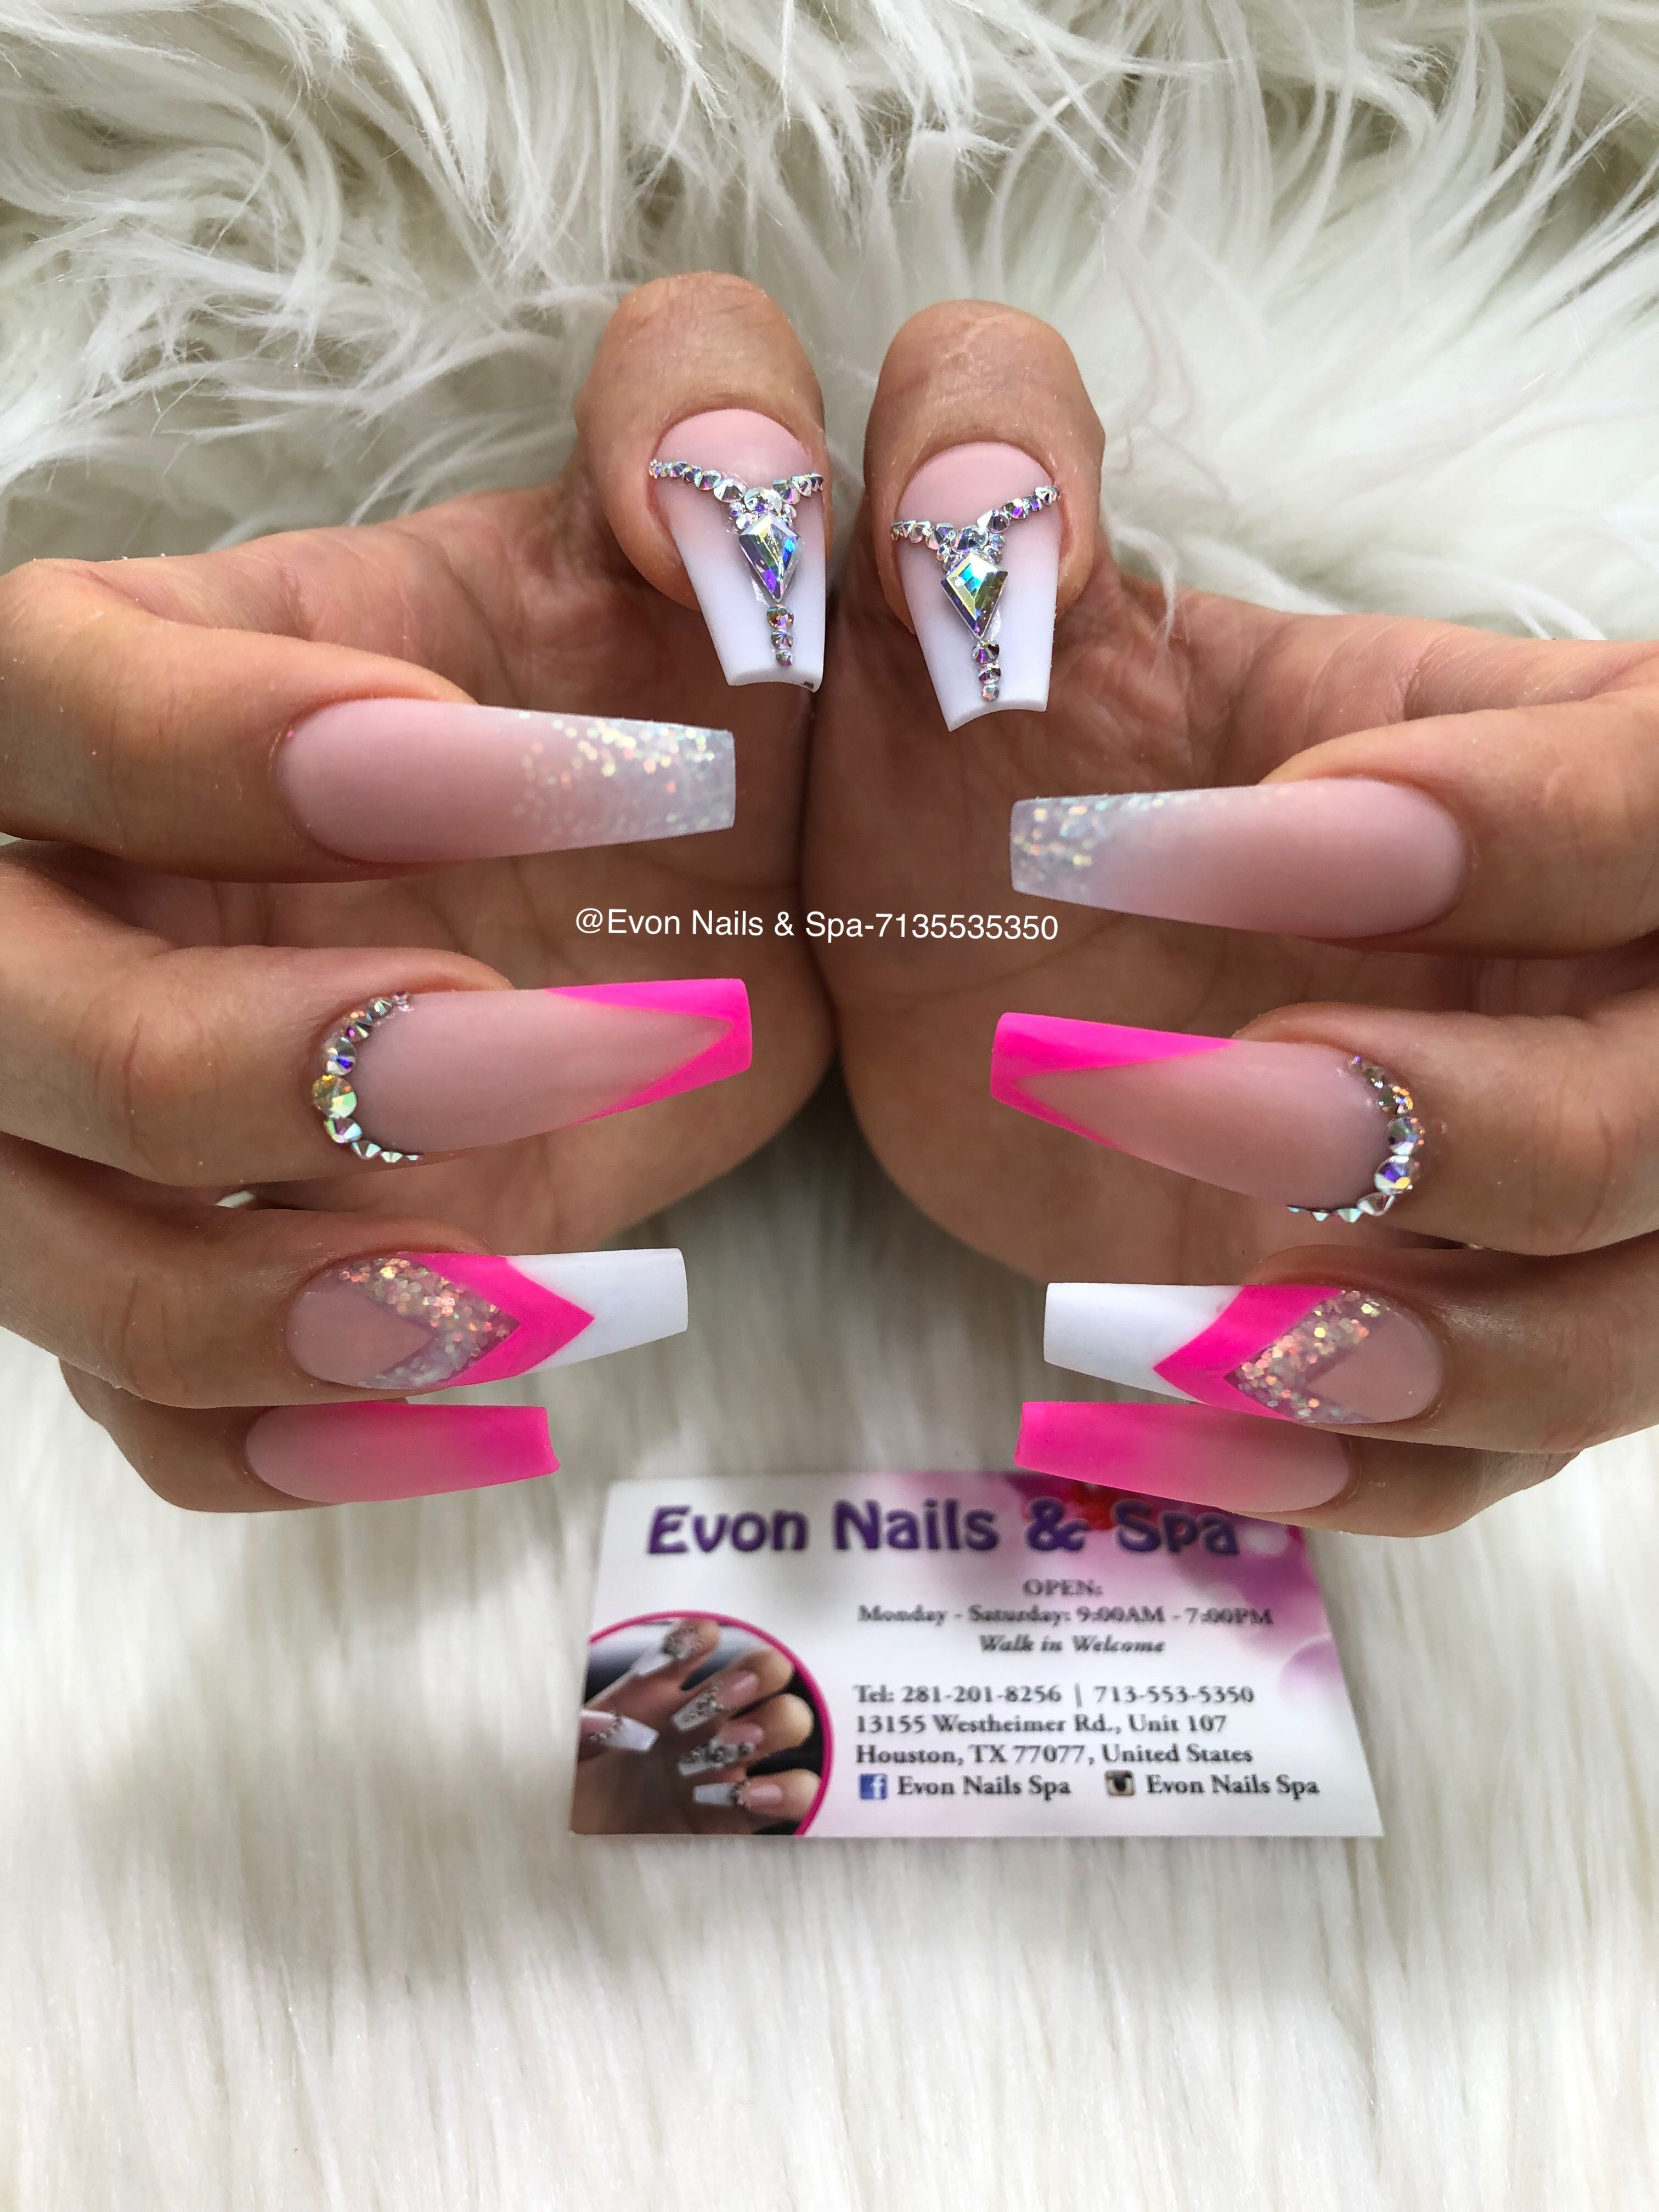 Pin By Evon Nails Spa On Evon Nails Spa With Images Cute